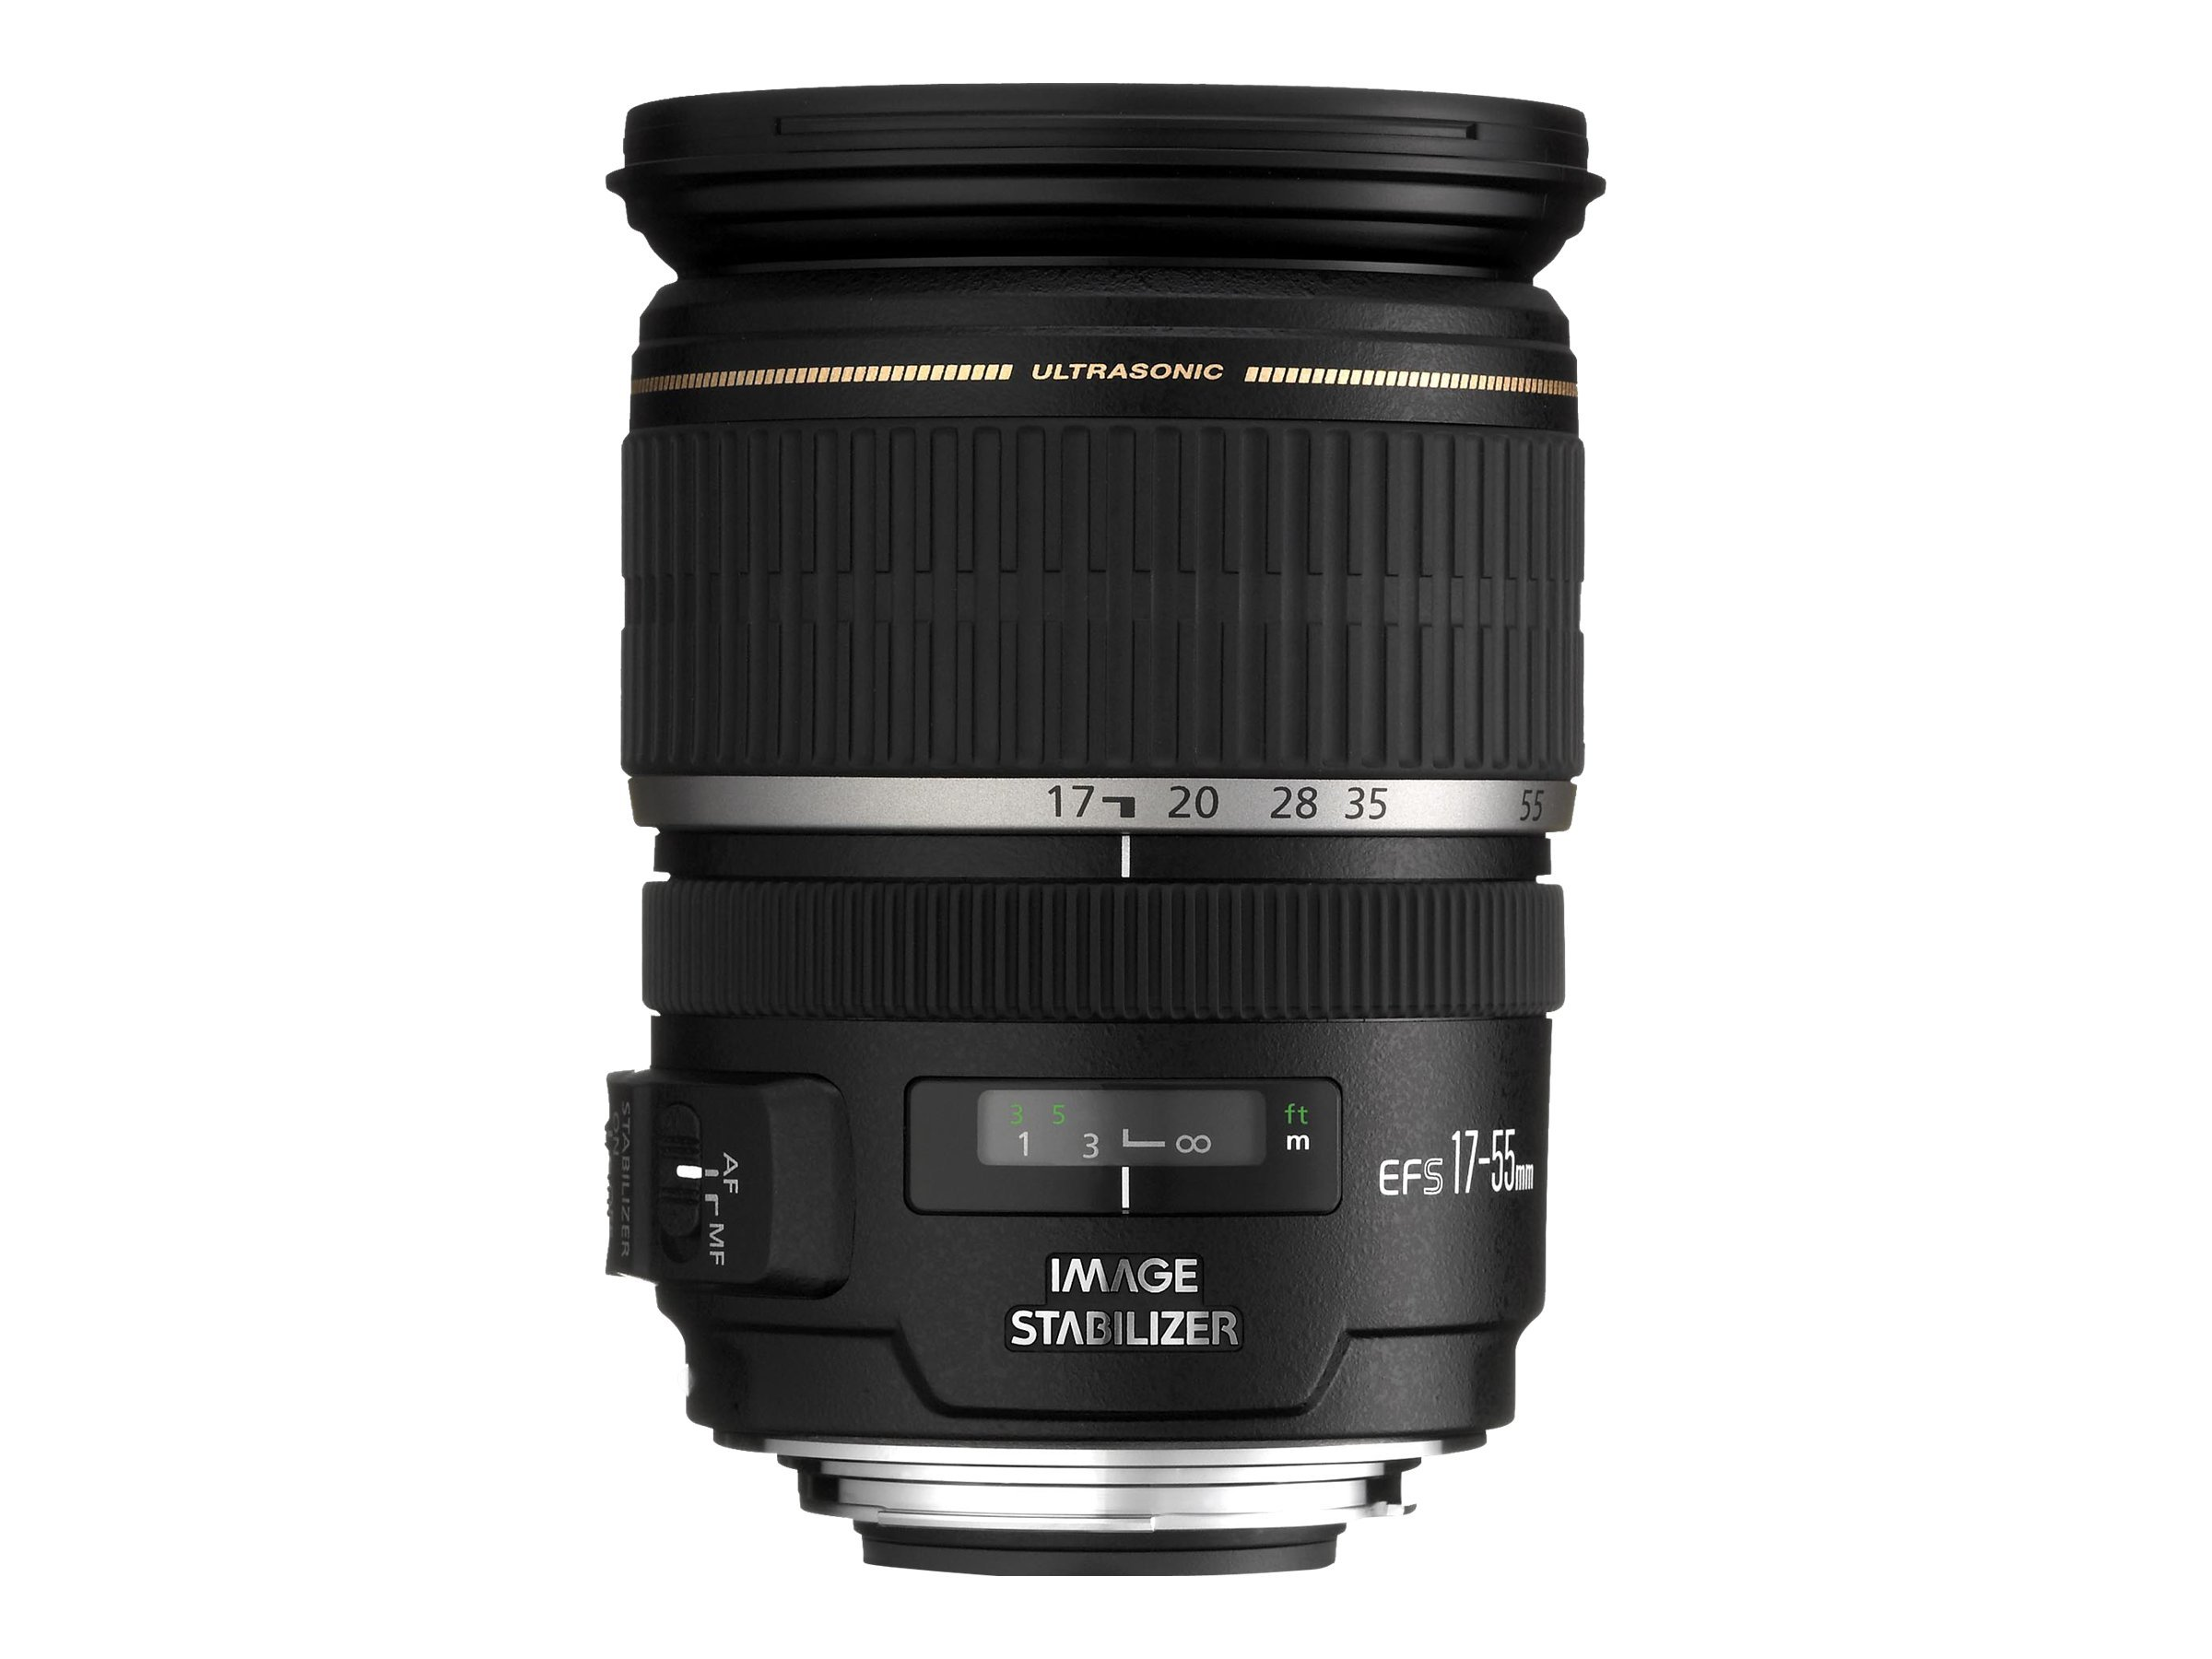 Canon EF-S zoom lens - 17 mm - 55 mm